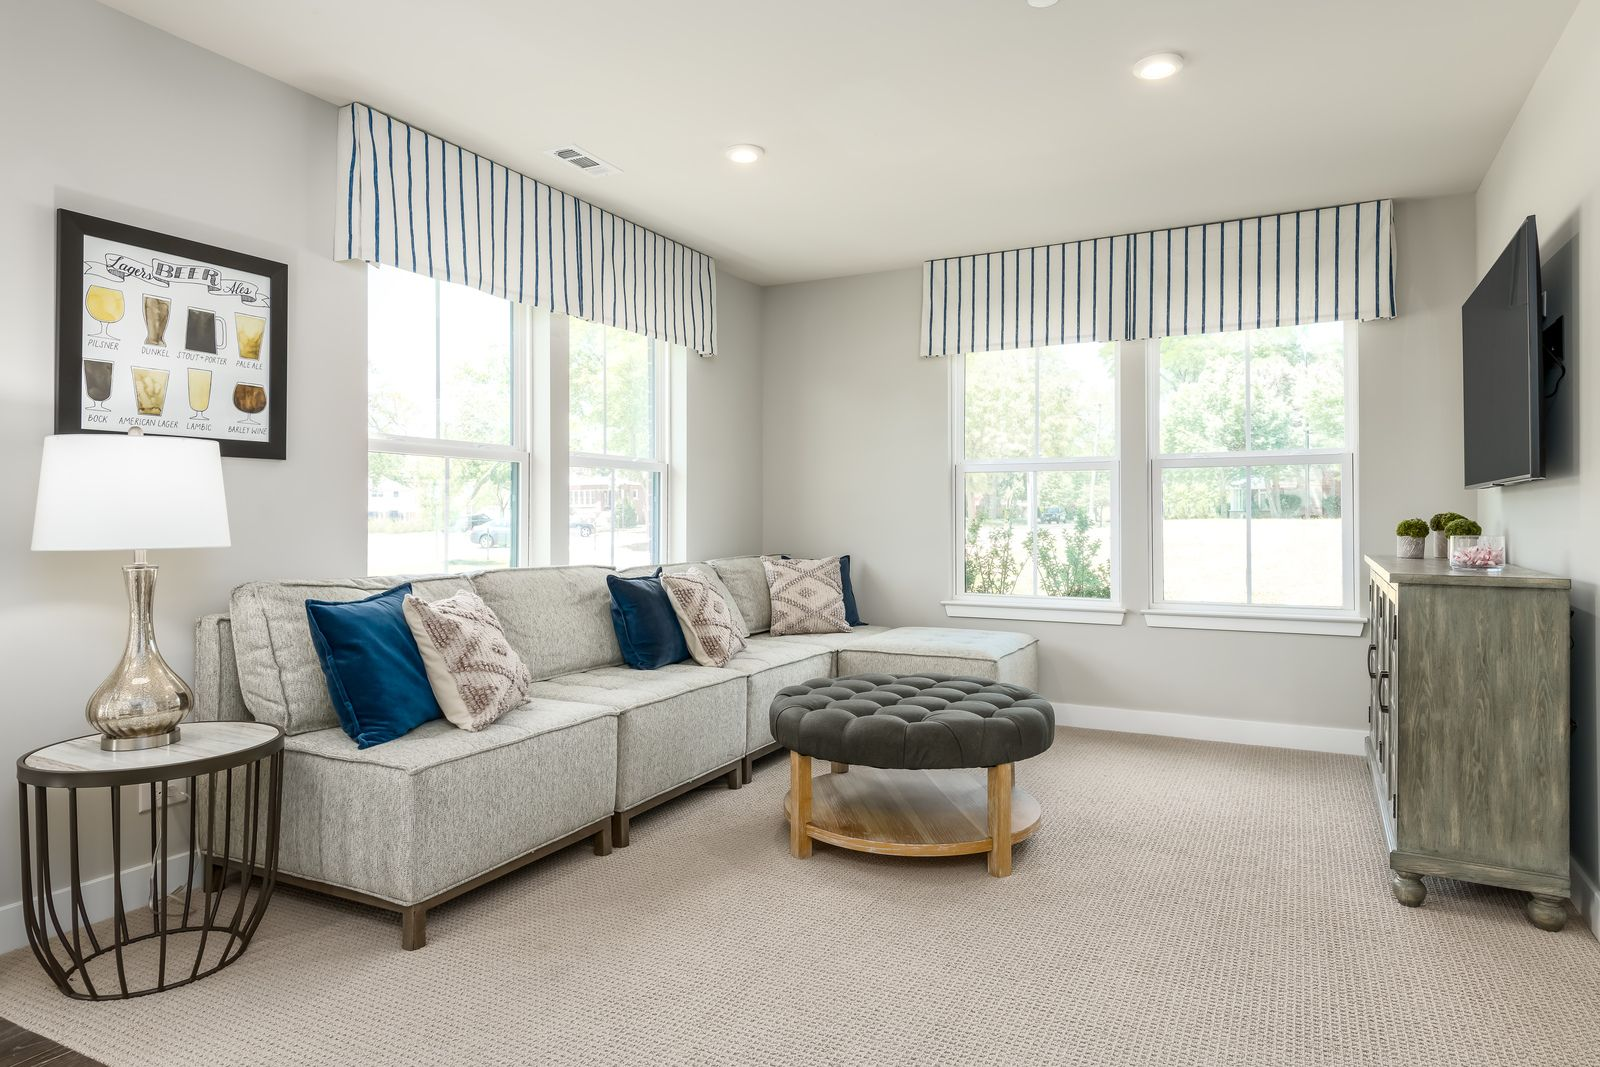 Living Area featured in the Mendelssohn Rear Garage By Ryan Homes in Washington, MD